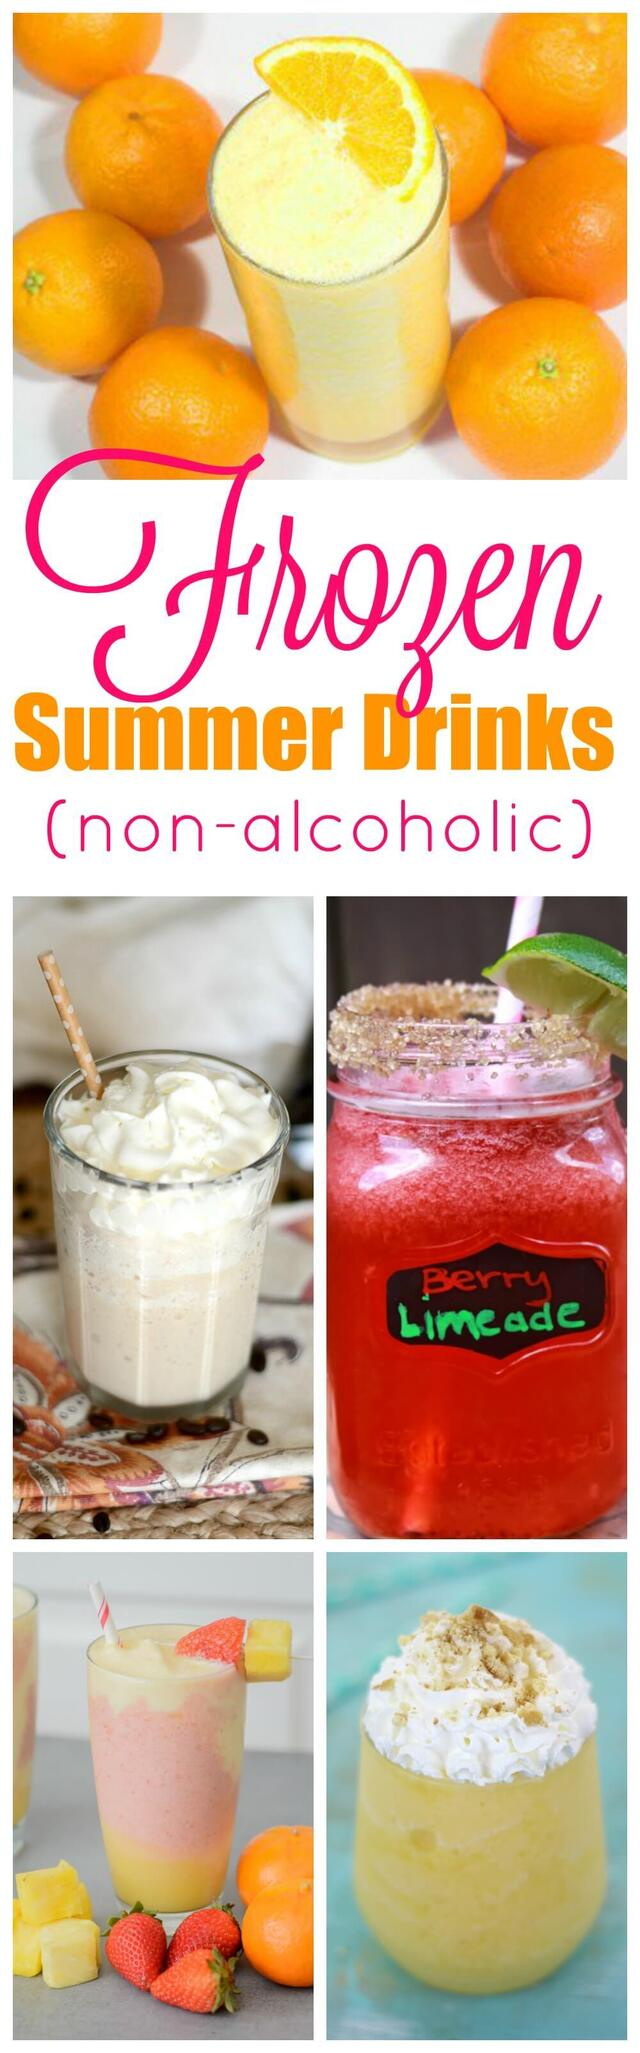 Frozen Summer Drinks that are Non-Alcoholic